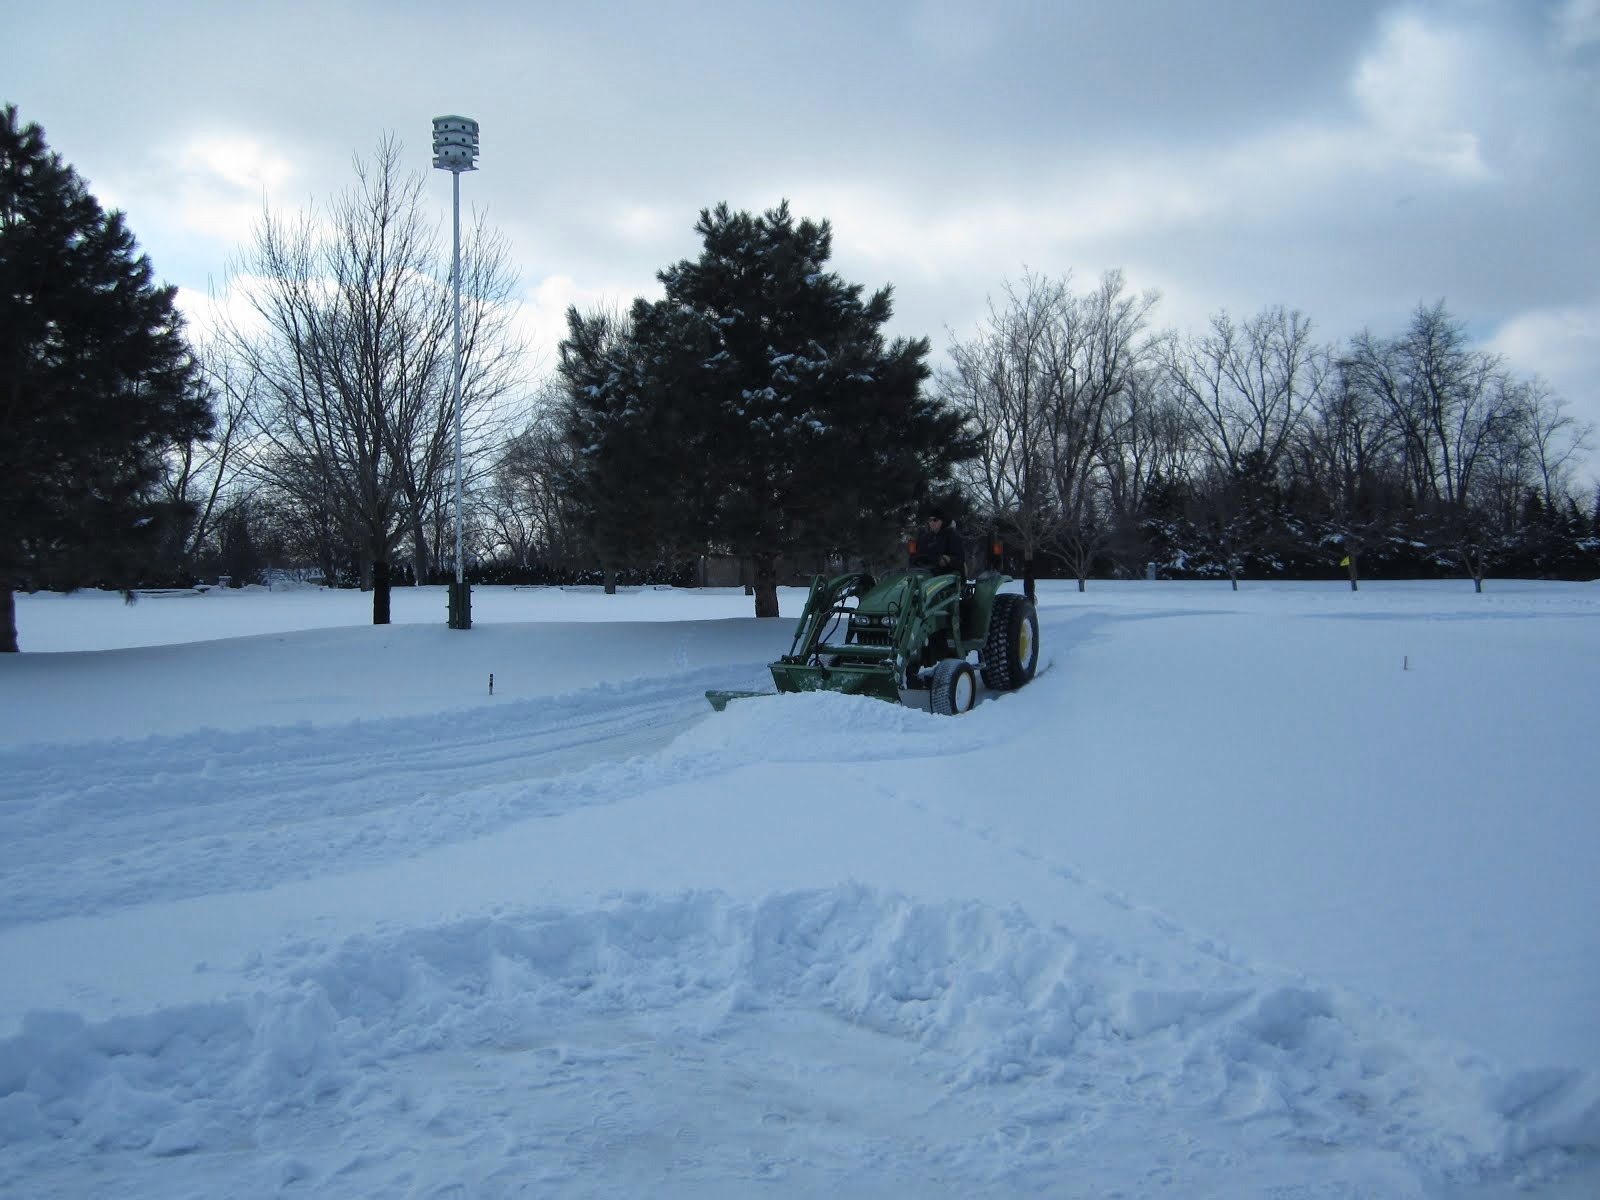 Removing snow from putting greens February 2014